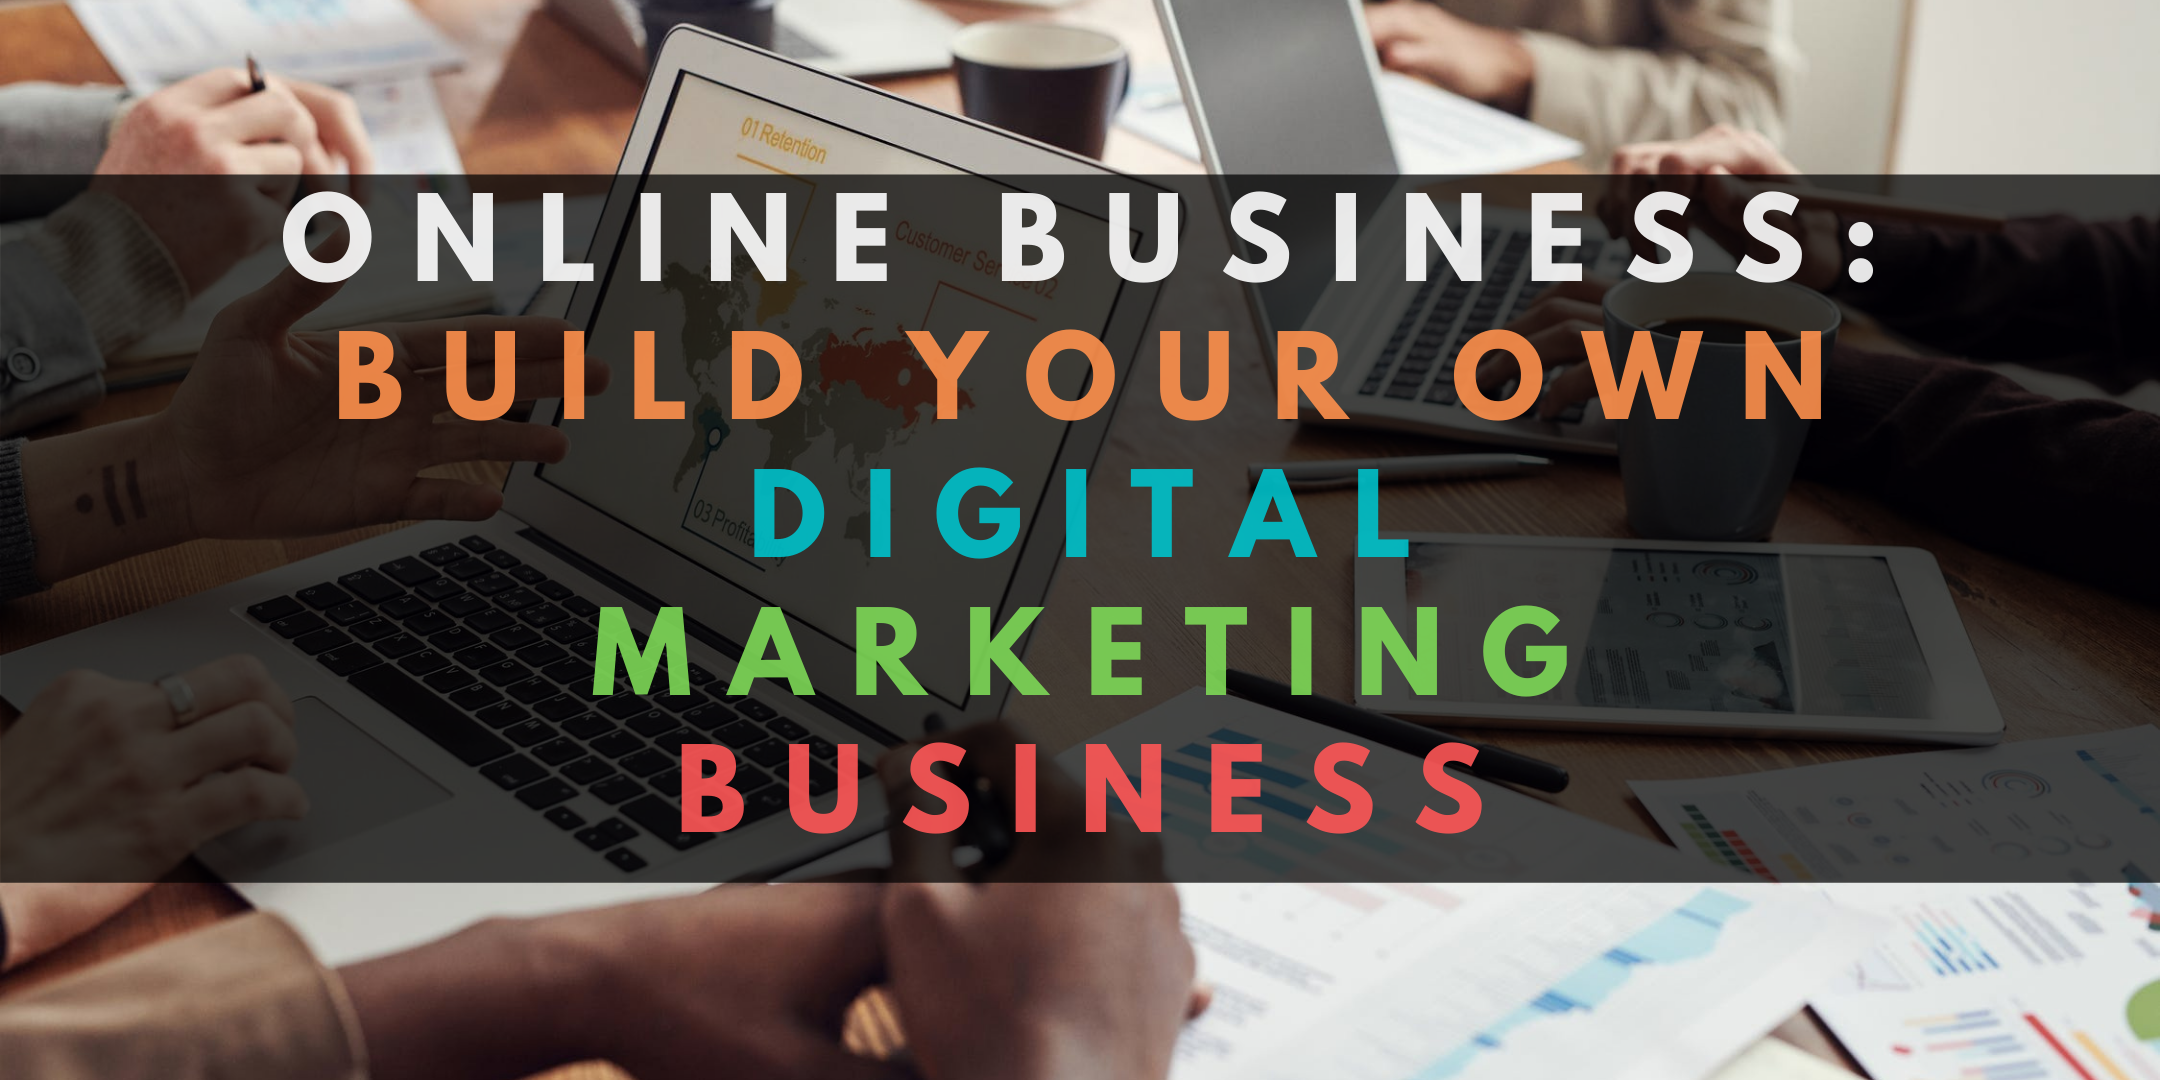 Online Business: Build your own Digital Marketing Business